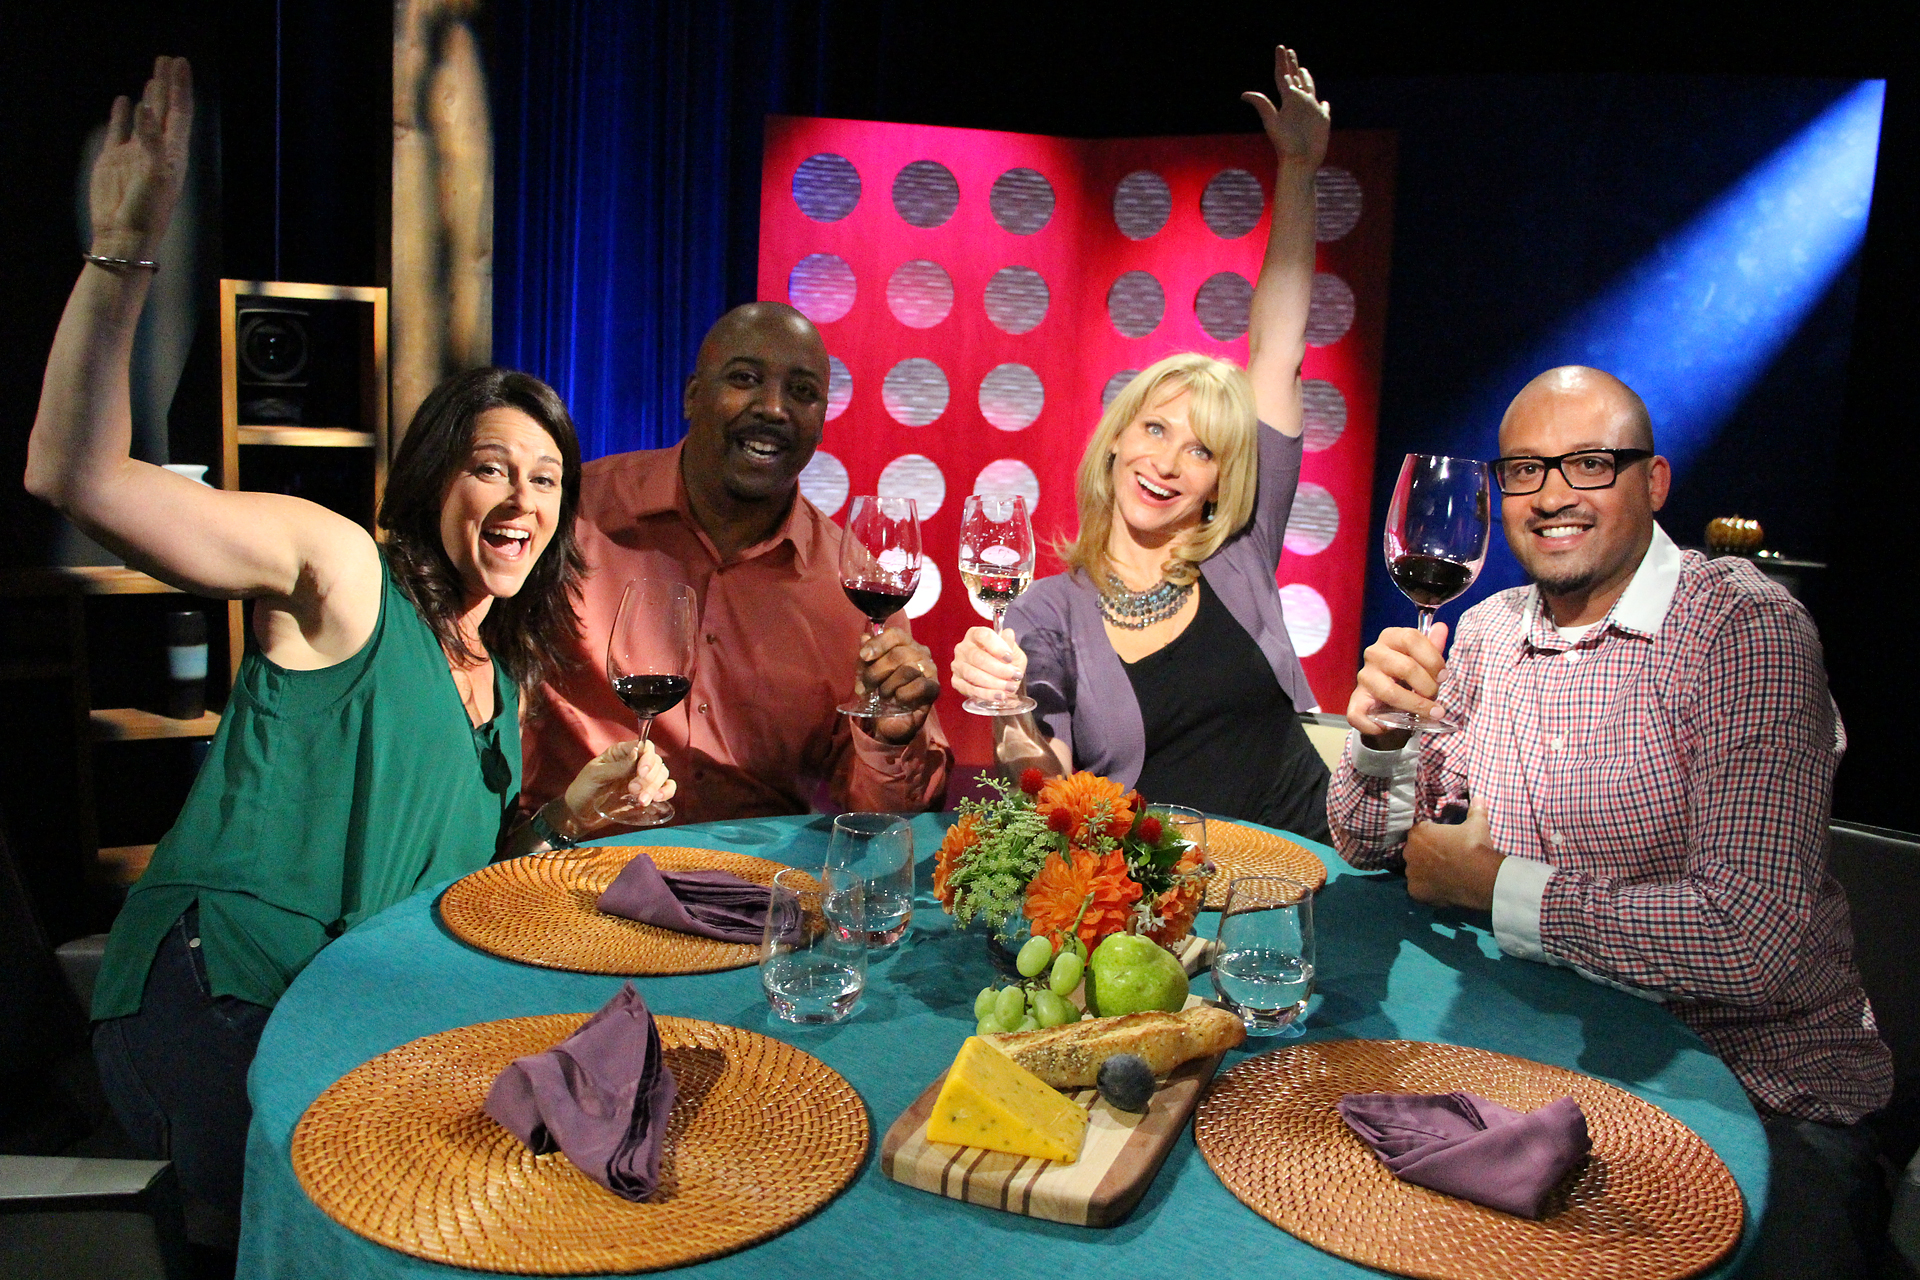 Host Leslie Sbrocco and guests having fun on the set of Check, Please! Bay Area Season 10 episode 7.